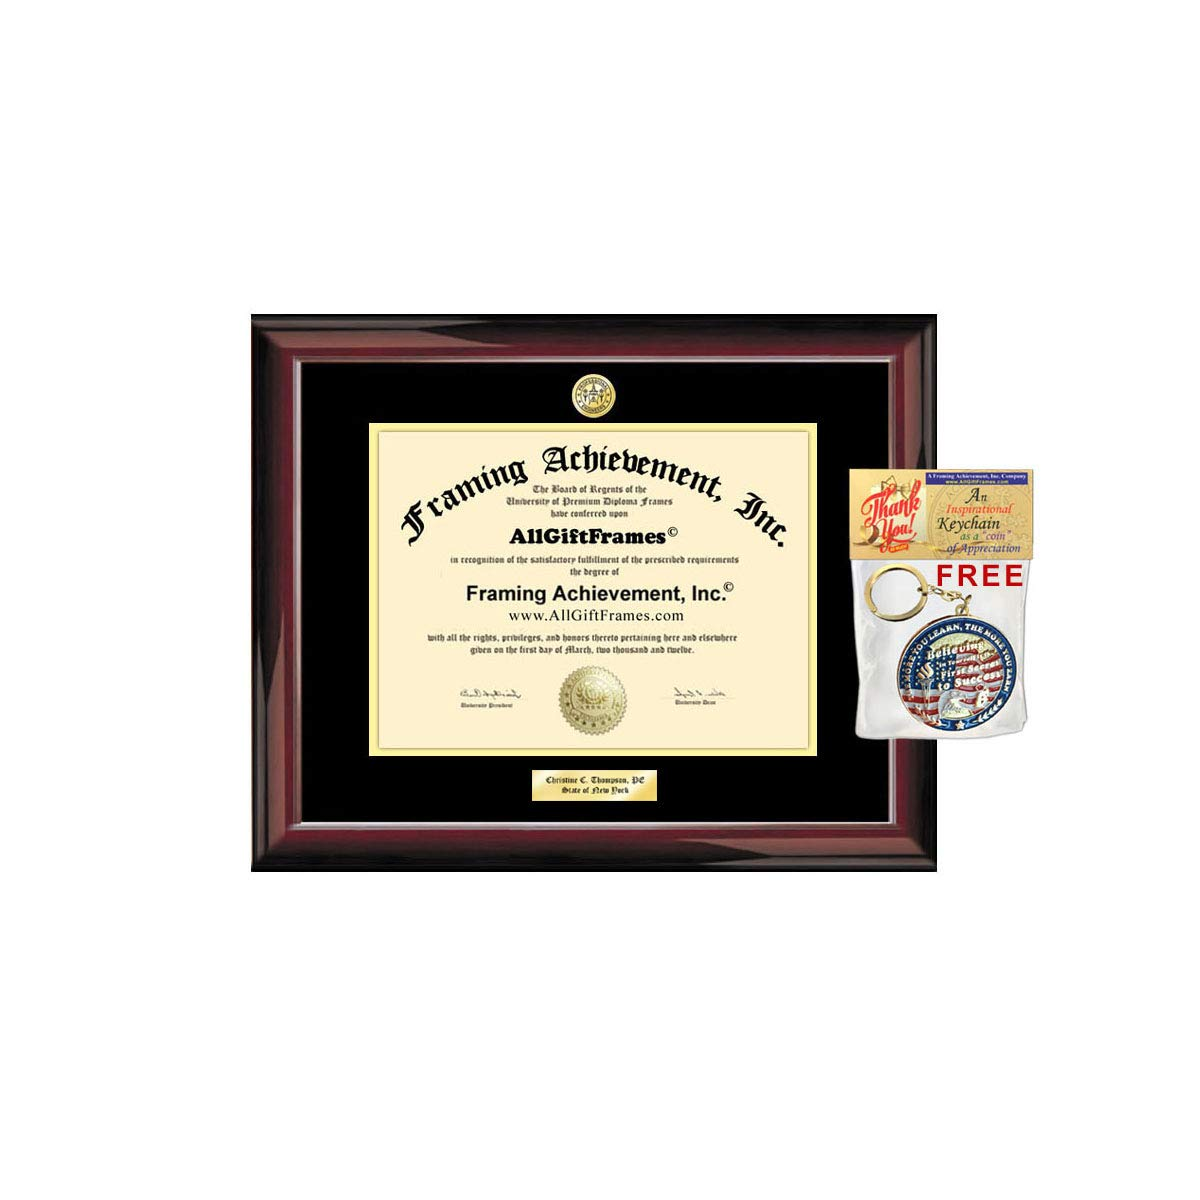 AllGiftFrames Certification License Certificate Passing Examination Exam State Board Diploma Frame Holder Engraving Engineering School PE Engineer Certified Training Land Surveying